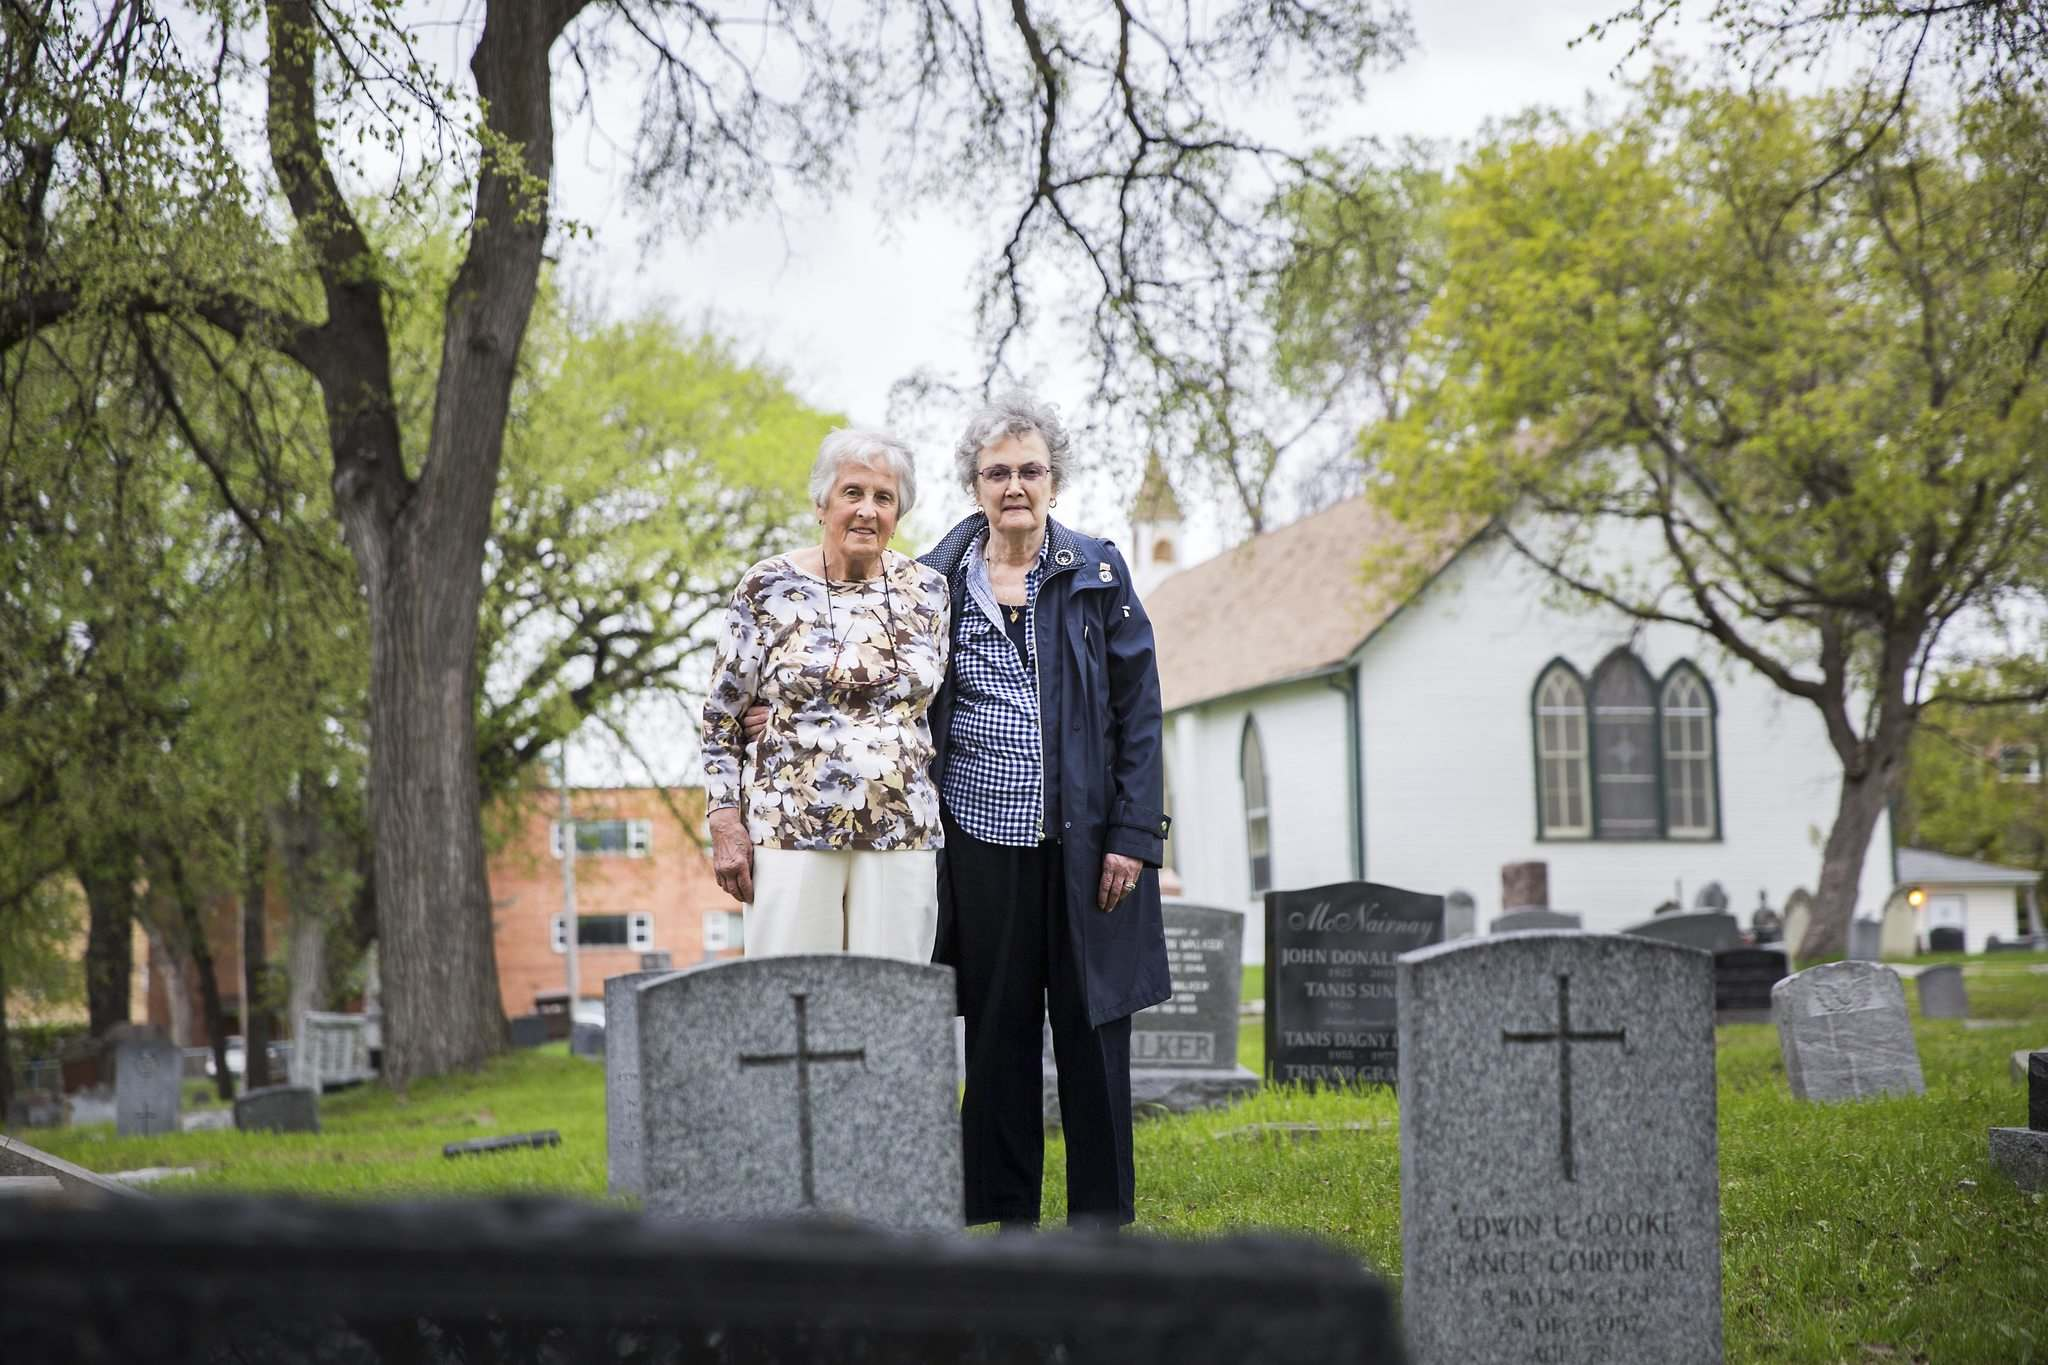 Steele and Gill are planning to create a memorial for the infants that could also be used by families and others who have experienced prenatal loss.